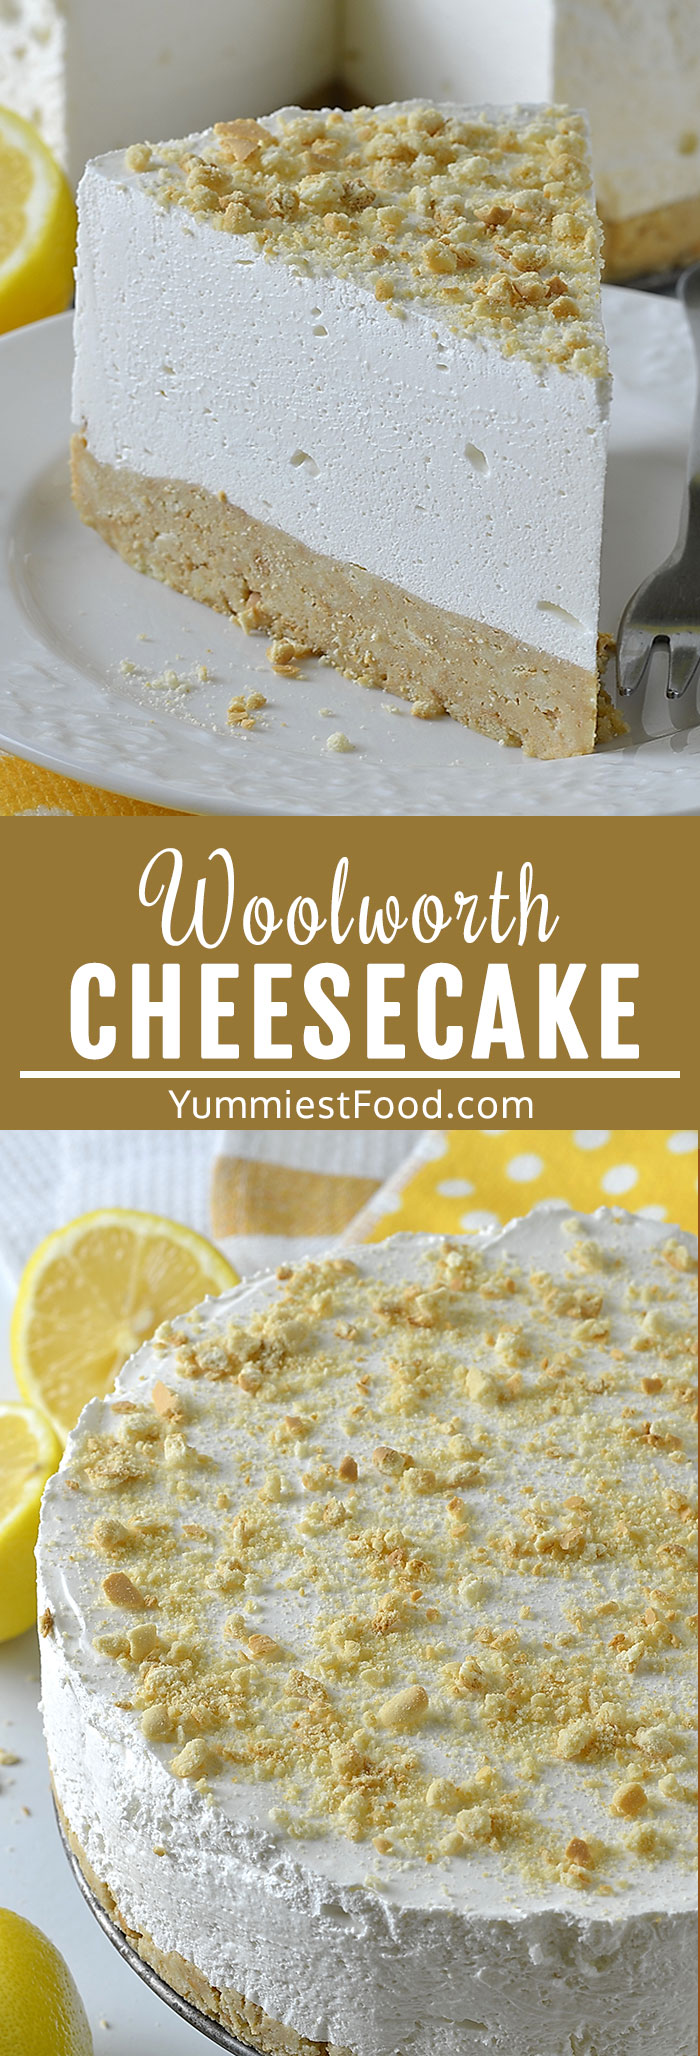 Old Fashioned Woolworth Cheesecake is classic No Bake dessert with graham cracker crust and creamy, light cheesecake full of lemon flavor! #dessertrecipes #dessertfoodrecipes #cheesecakerecipes #cheesecake